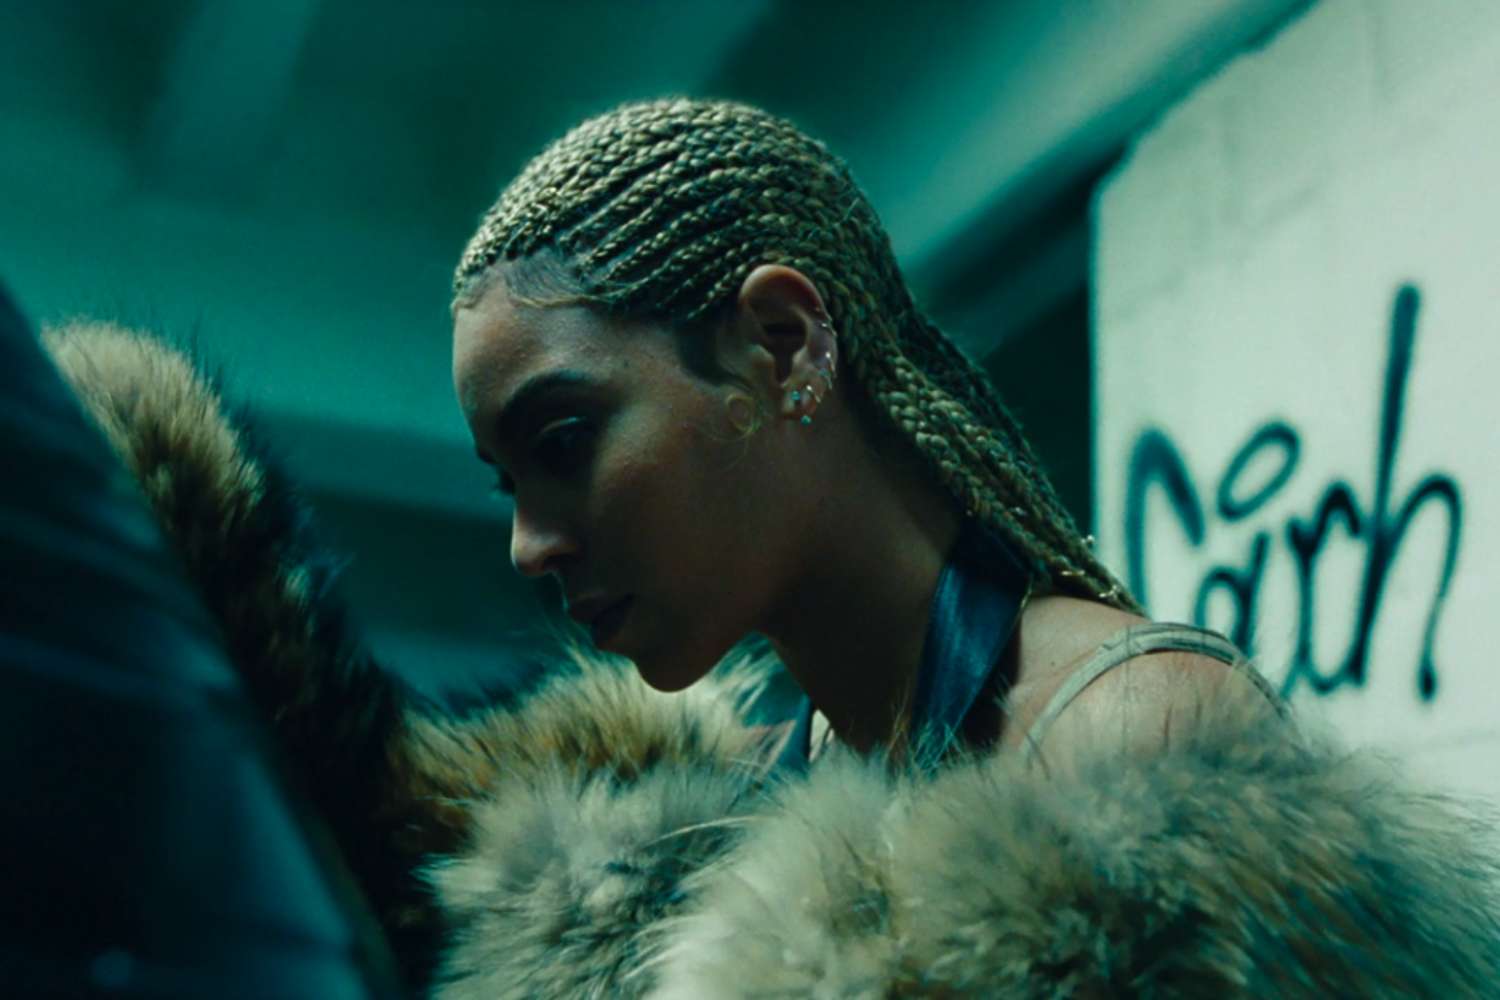 Beyoncé's 'Lemonade' is finally coming to all major streaming services!